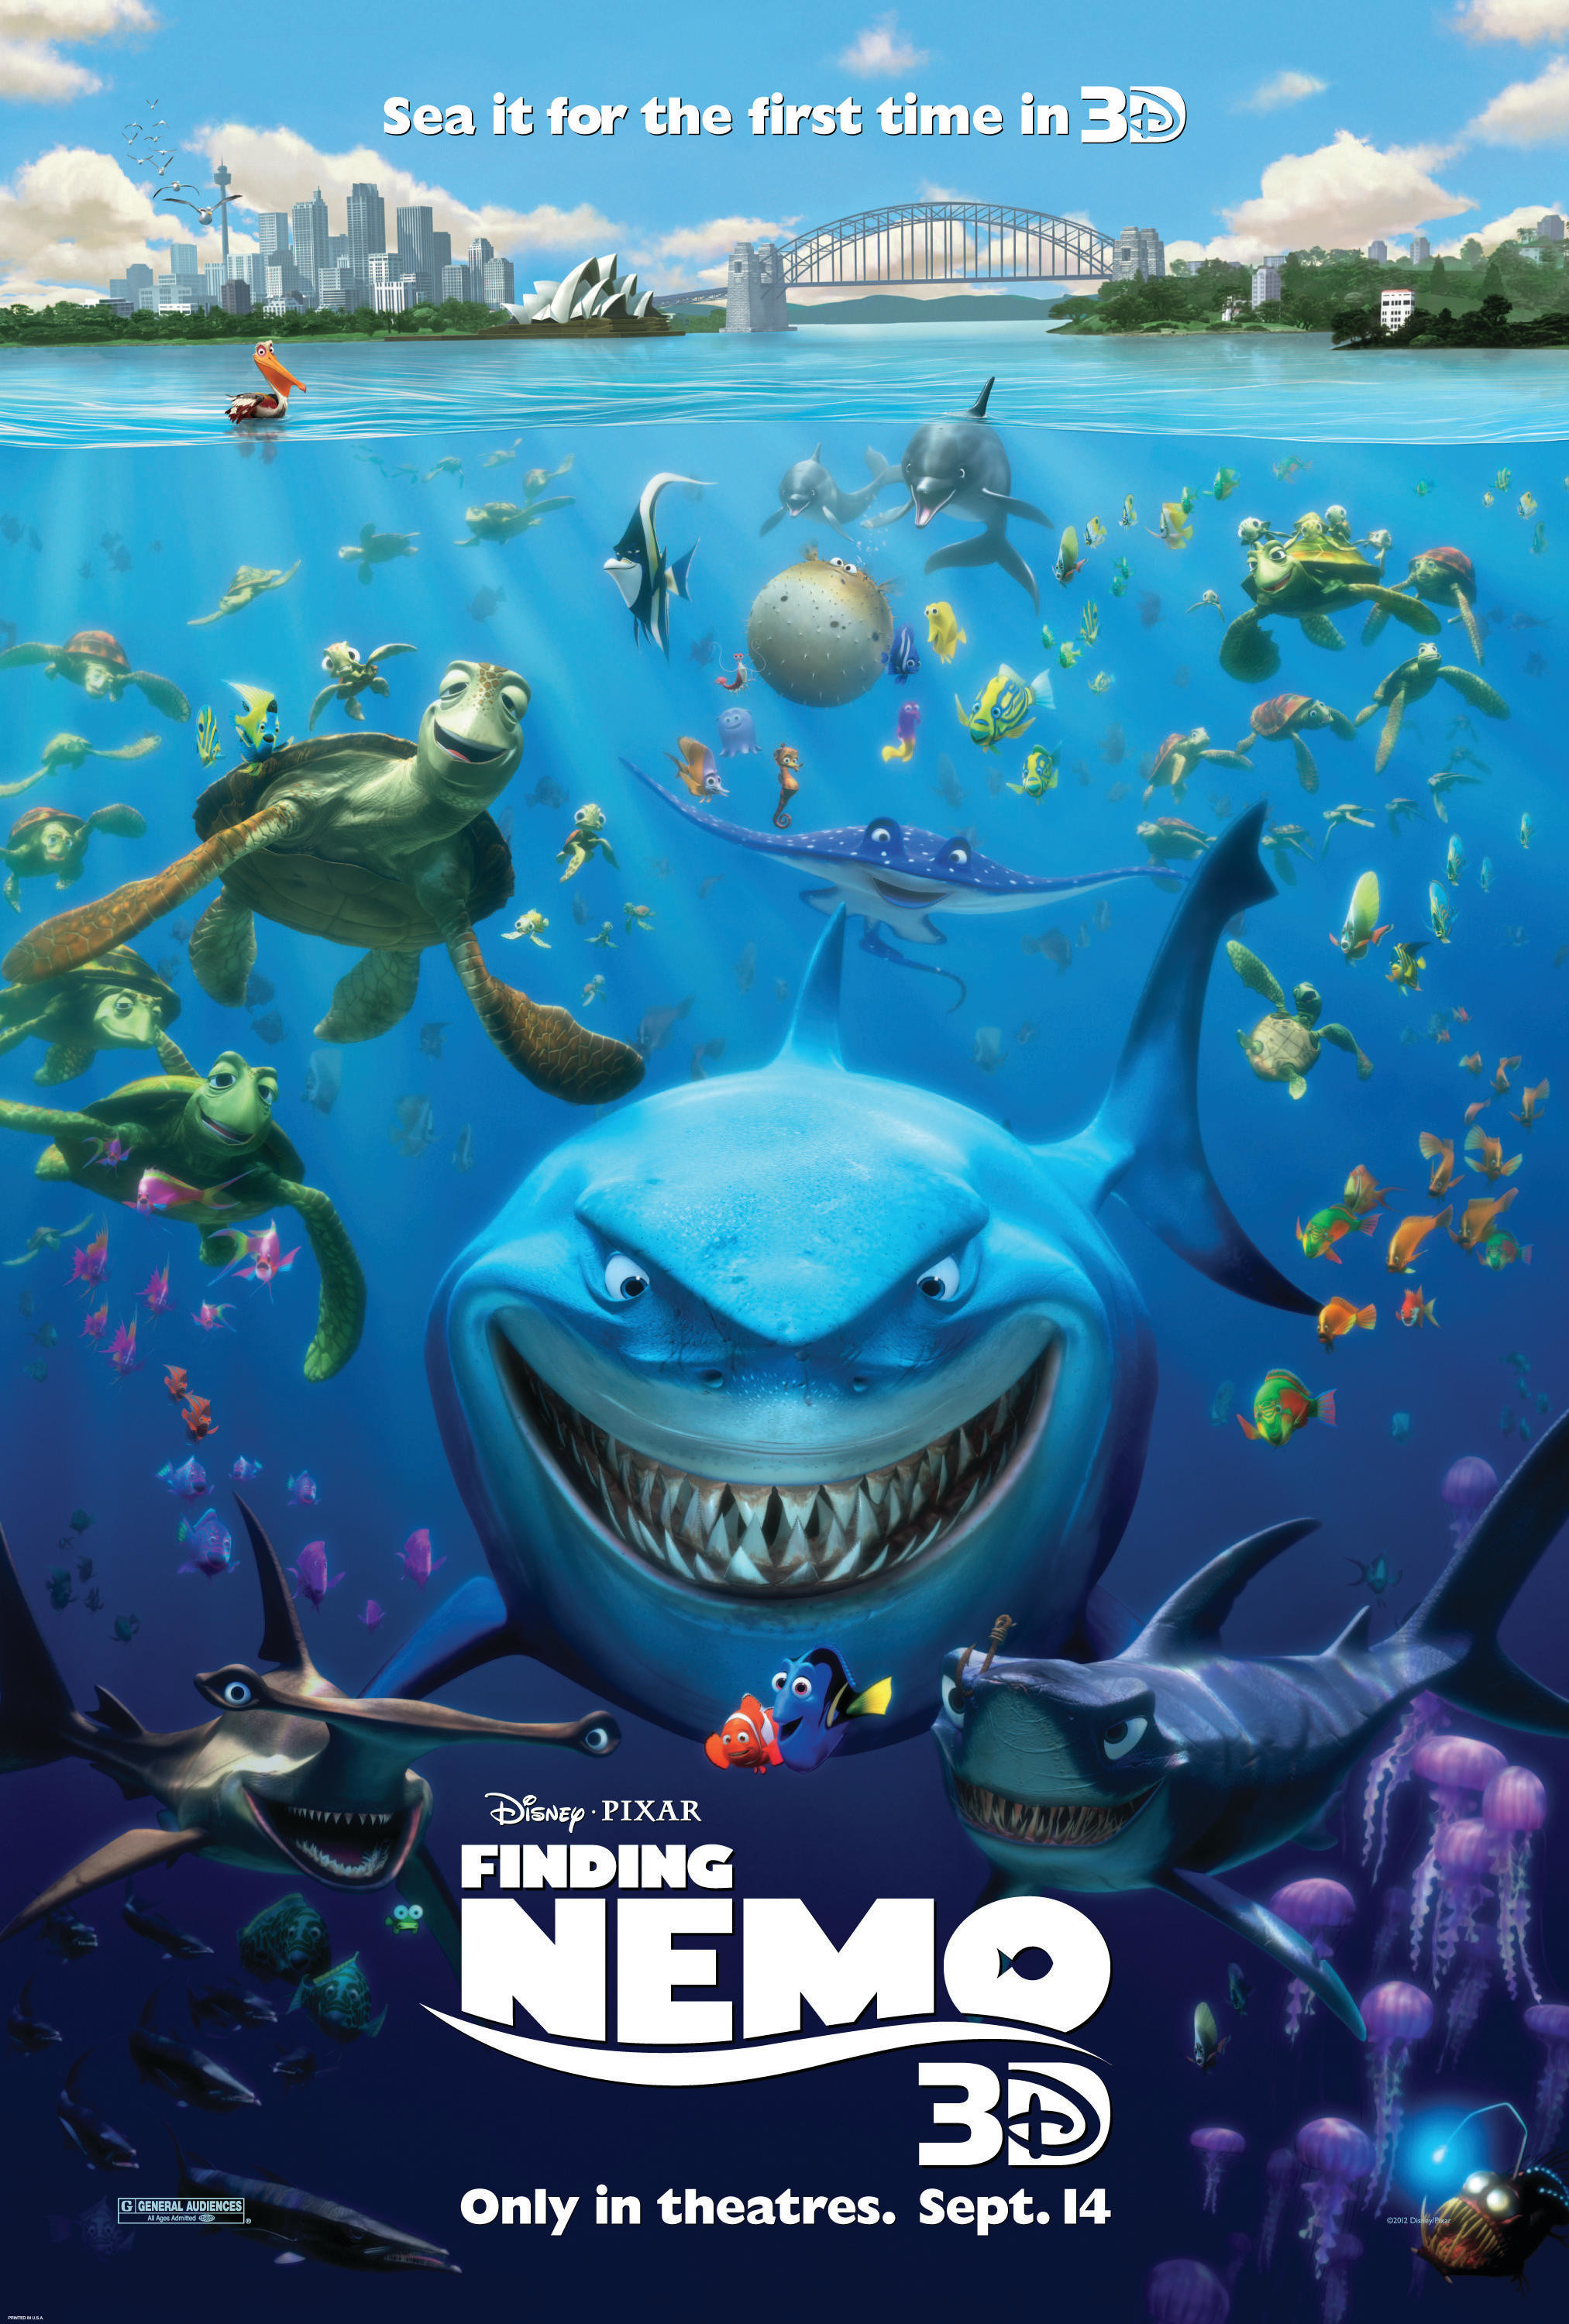 20 Things You May Not Know About Finding Nemo Beyond the Box